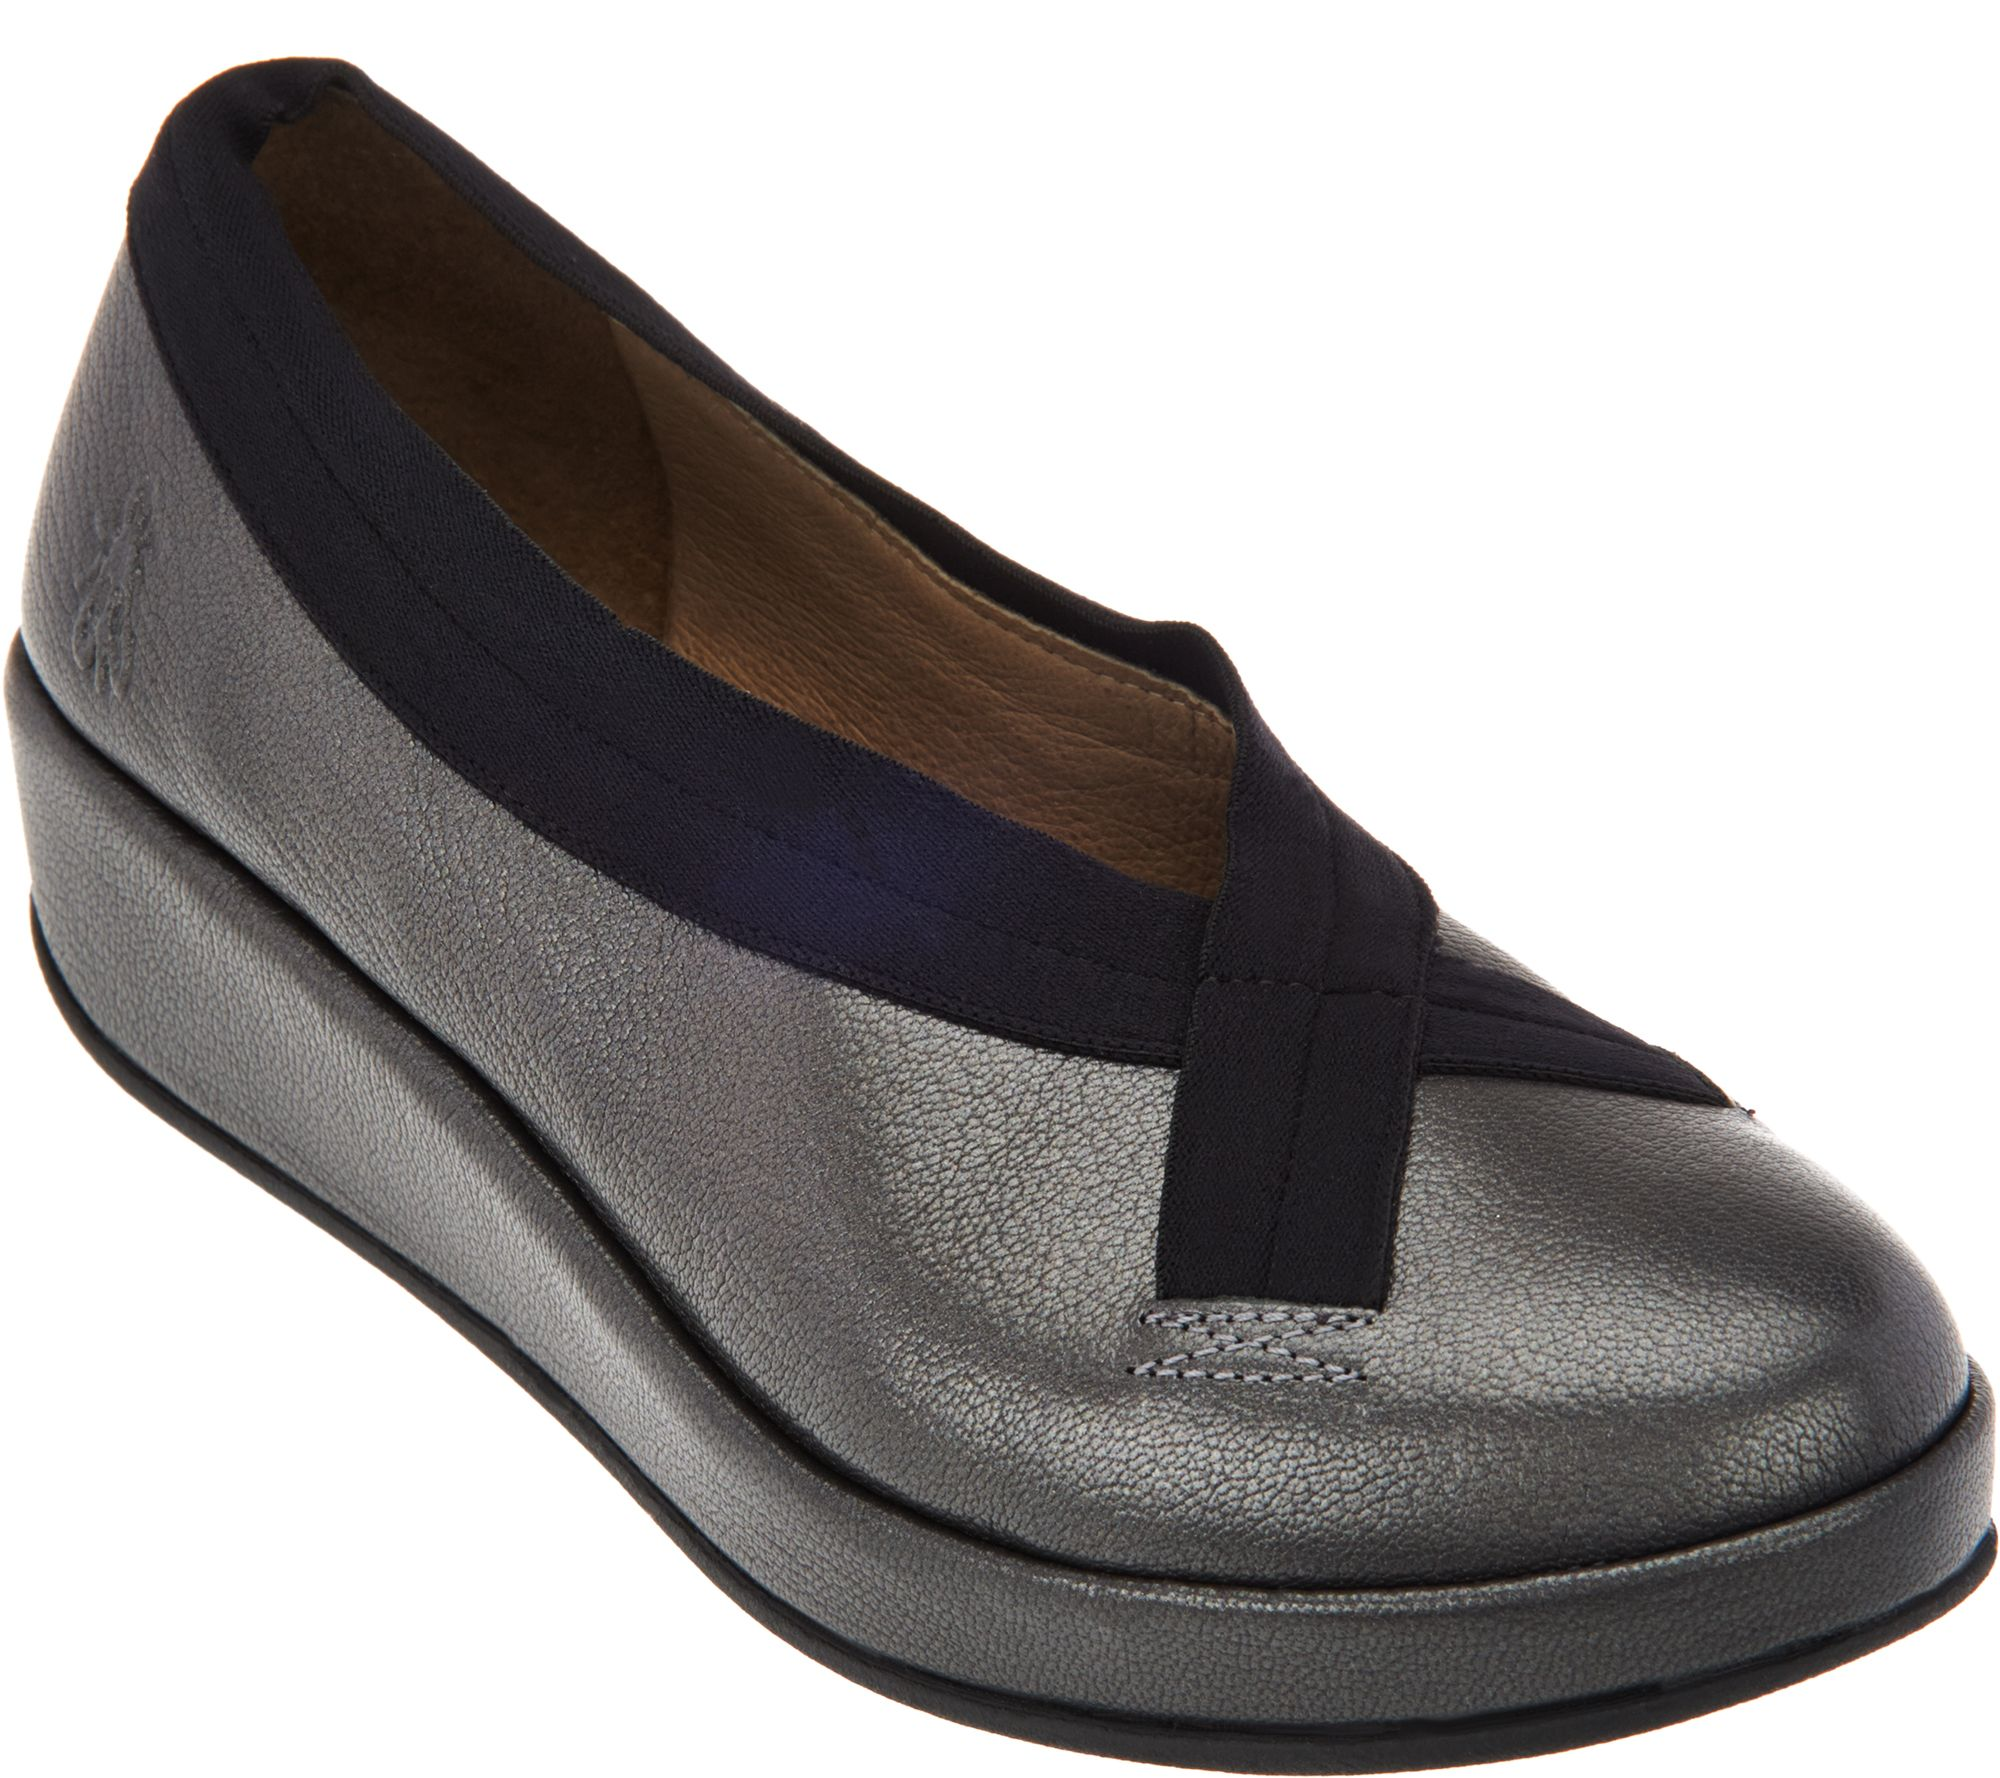 Roller shoes london - Fly London Leather Slip On Shoes Bobi A283450